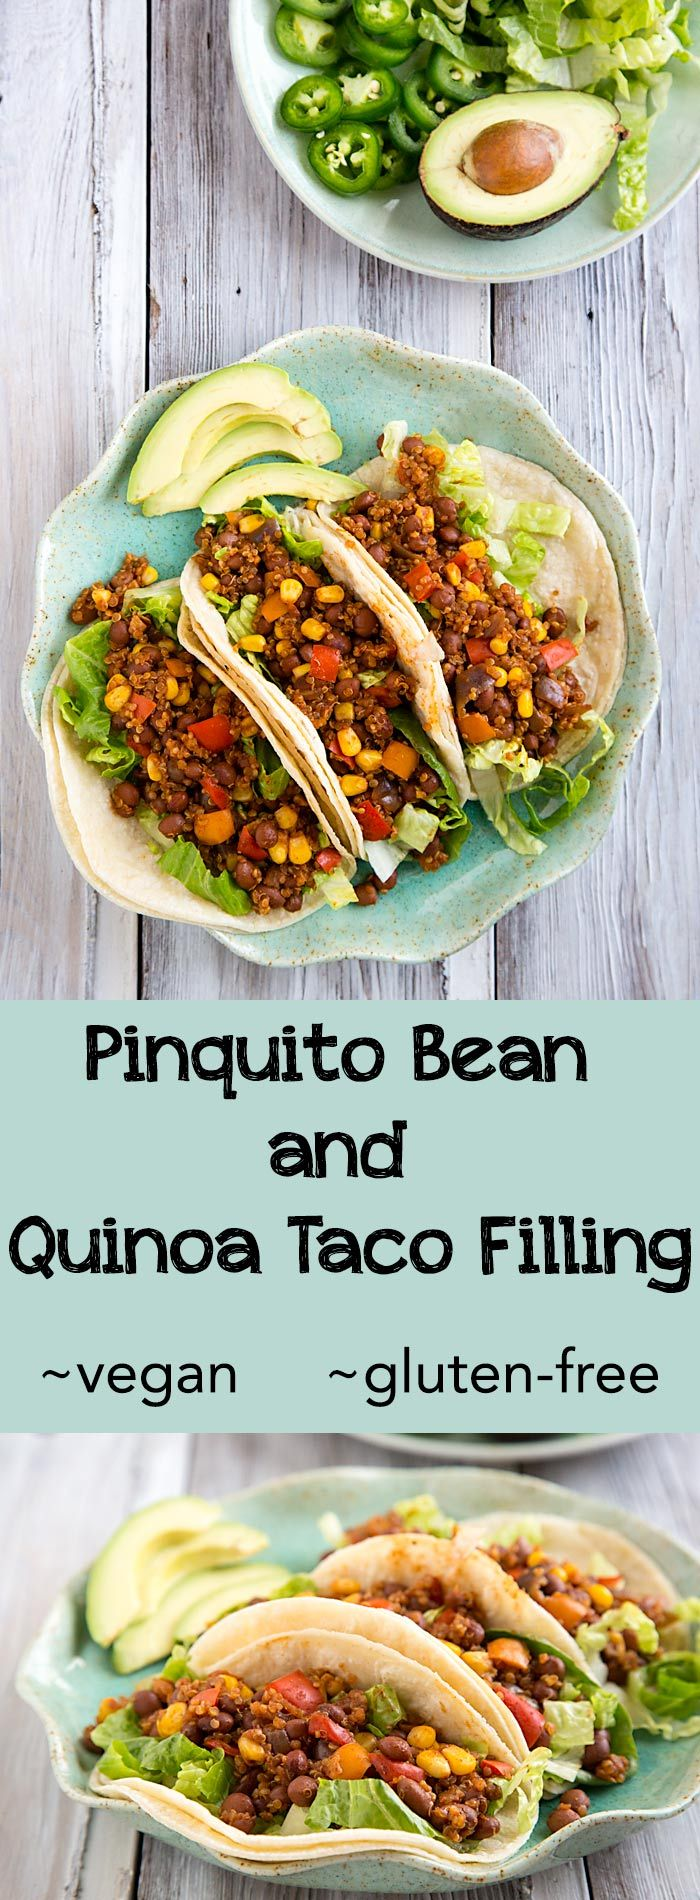 You won't miss the flavor or texture of meat with this vegan taco filling made with beans and quinoa. Gluten-free and fat-free too!